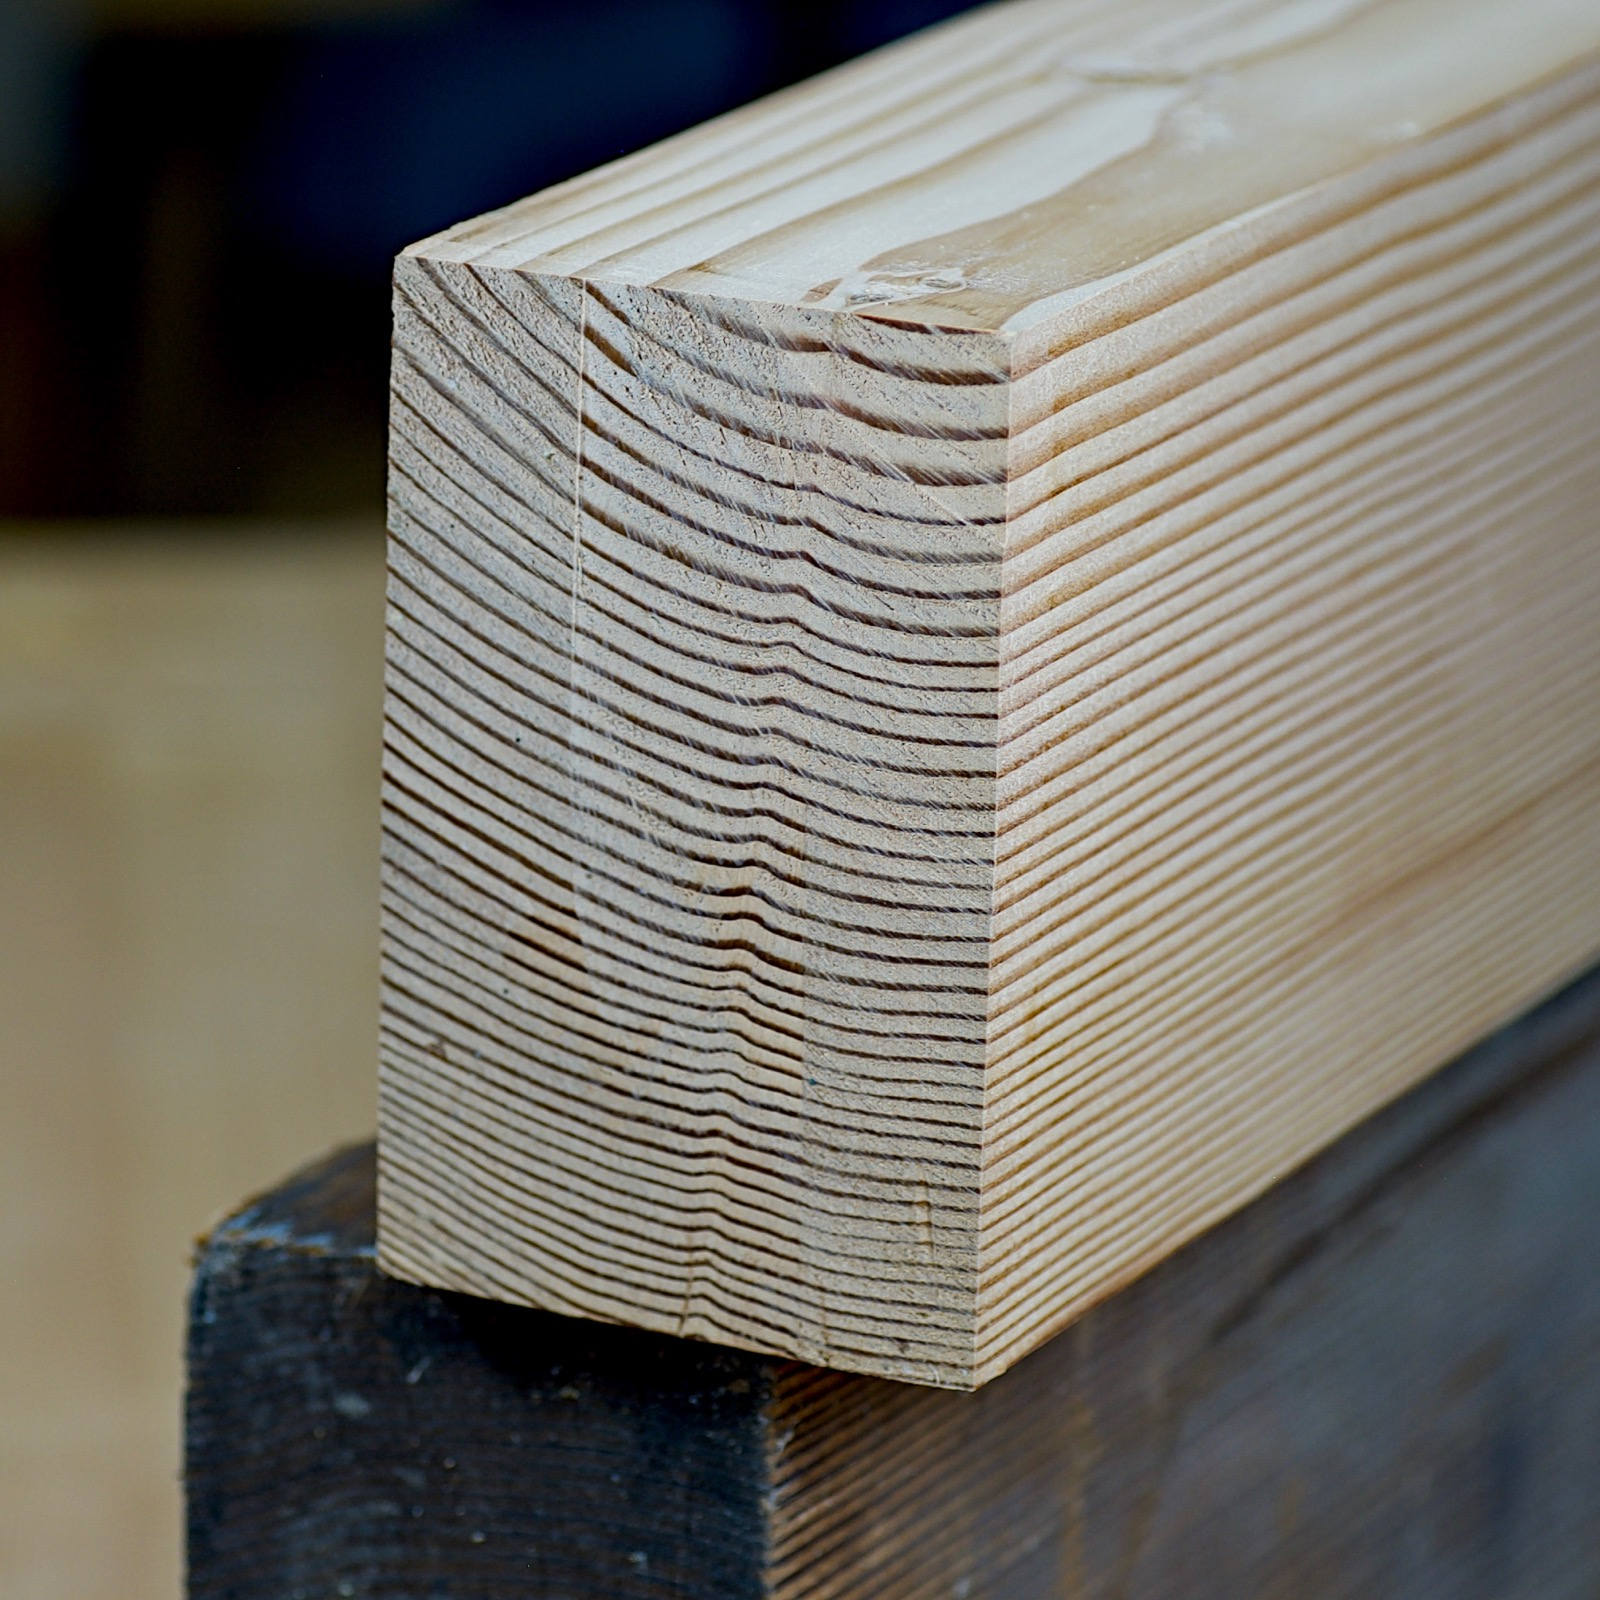 The end of a stretcher board showing its grain.